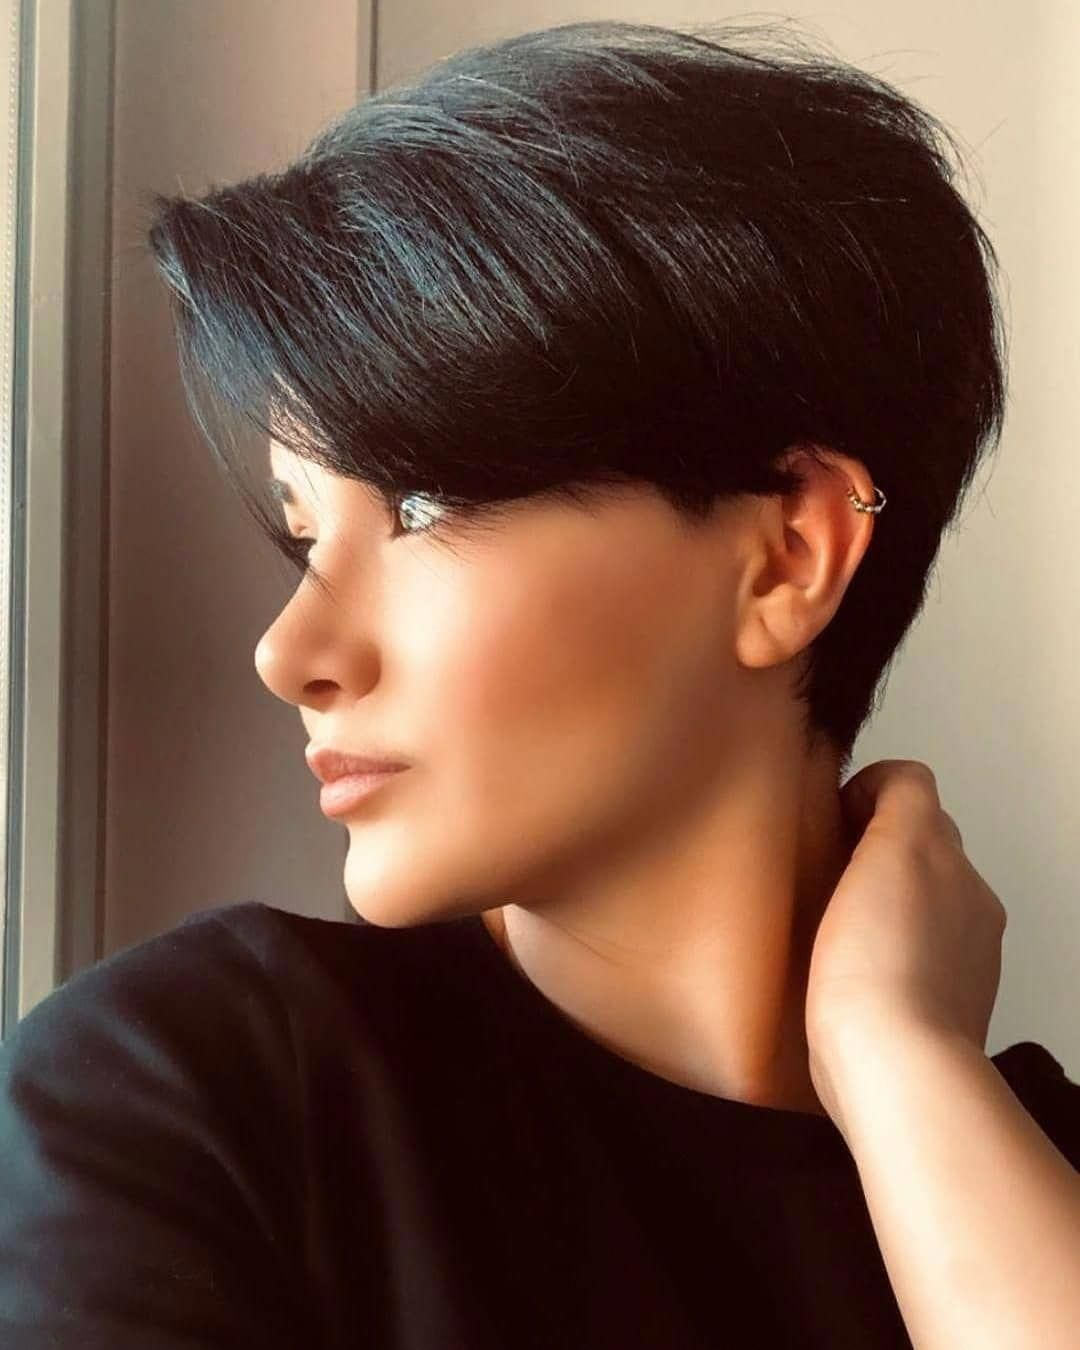 60 of the Most Stunning Short Hairstyles on Instag